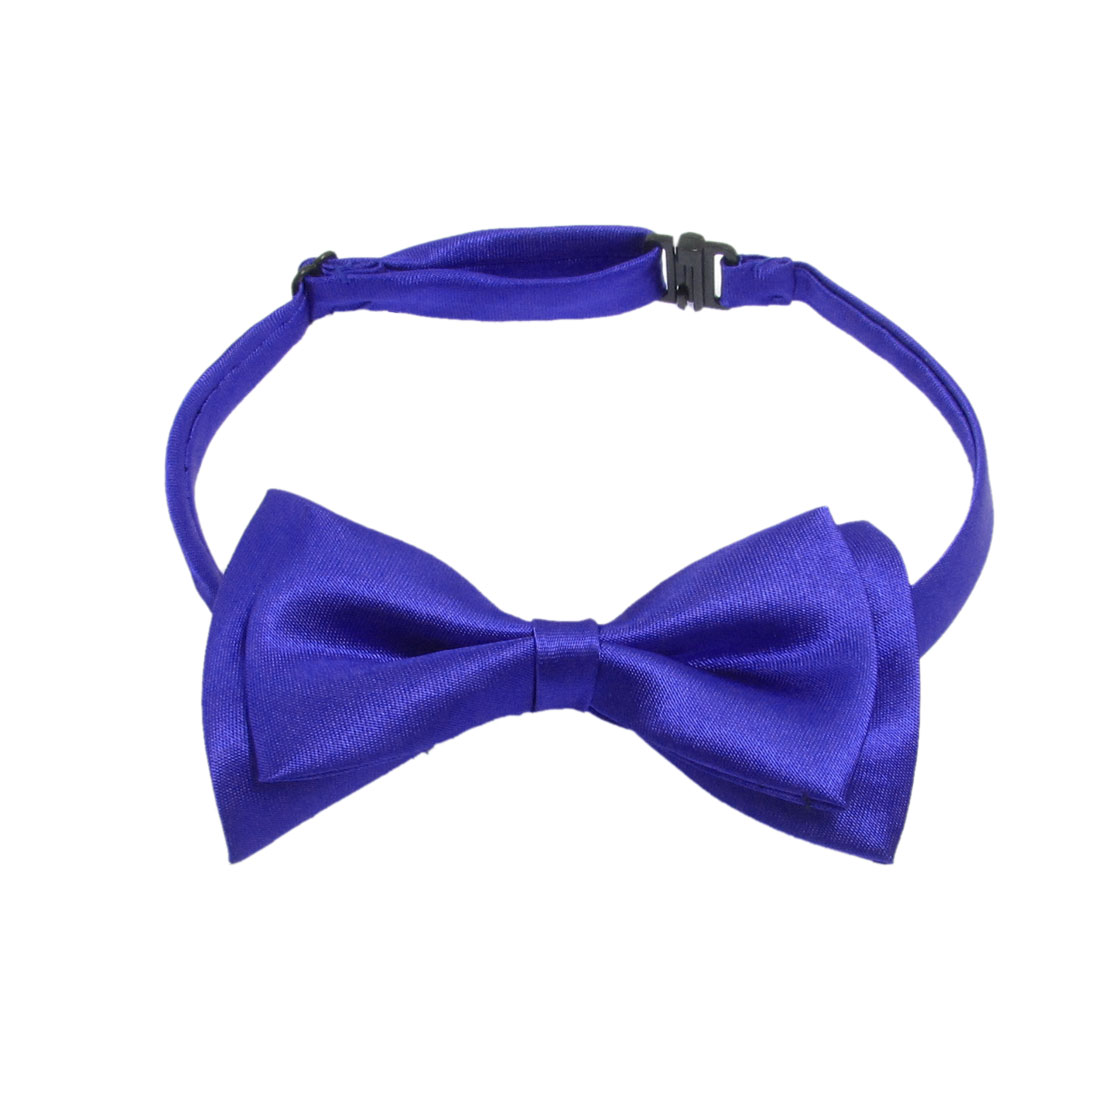 "Men's 4"" Width Blue Two Layer Bowknot Plastic Interlock Buckle Bow Tie"